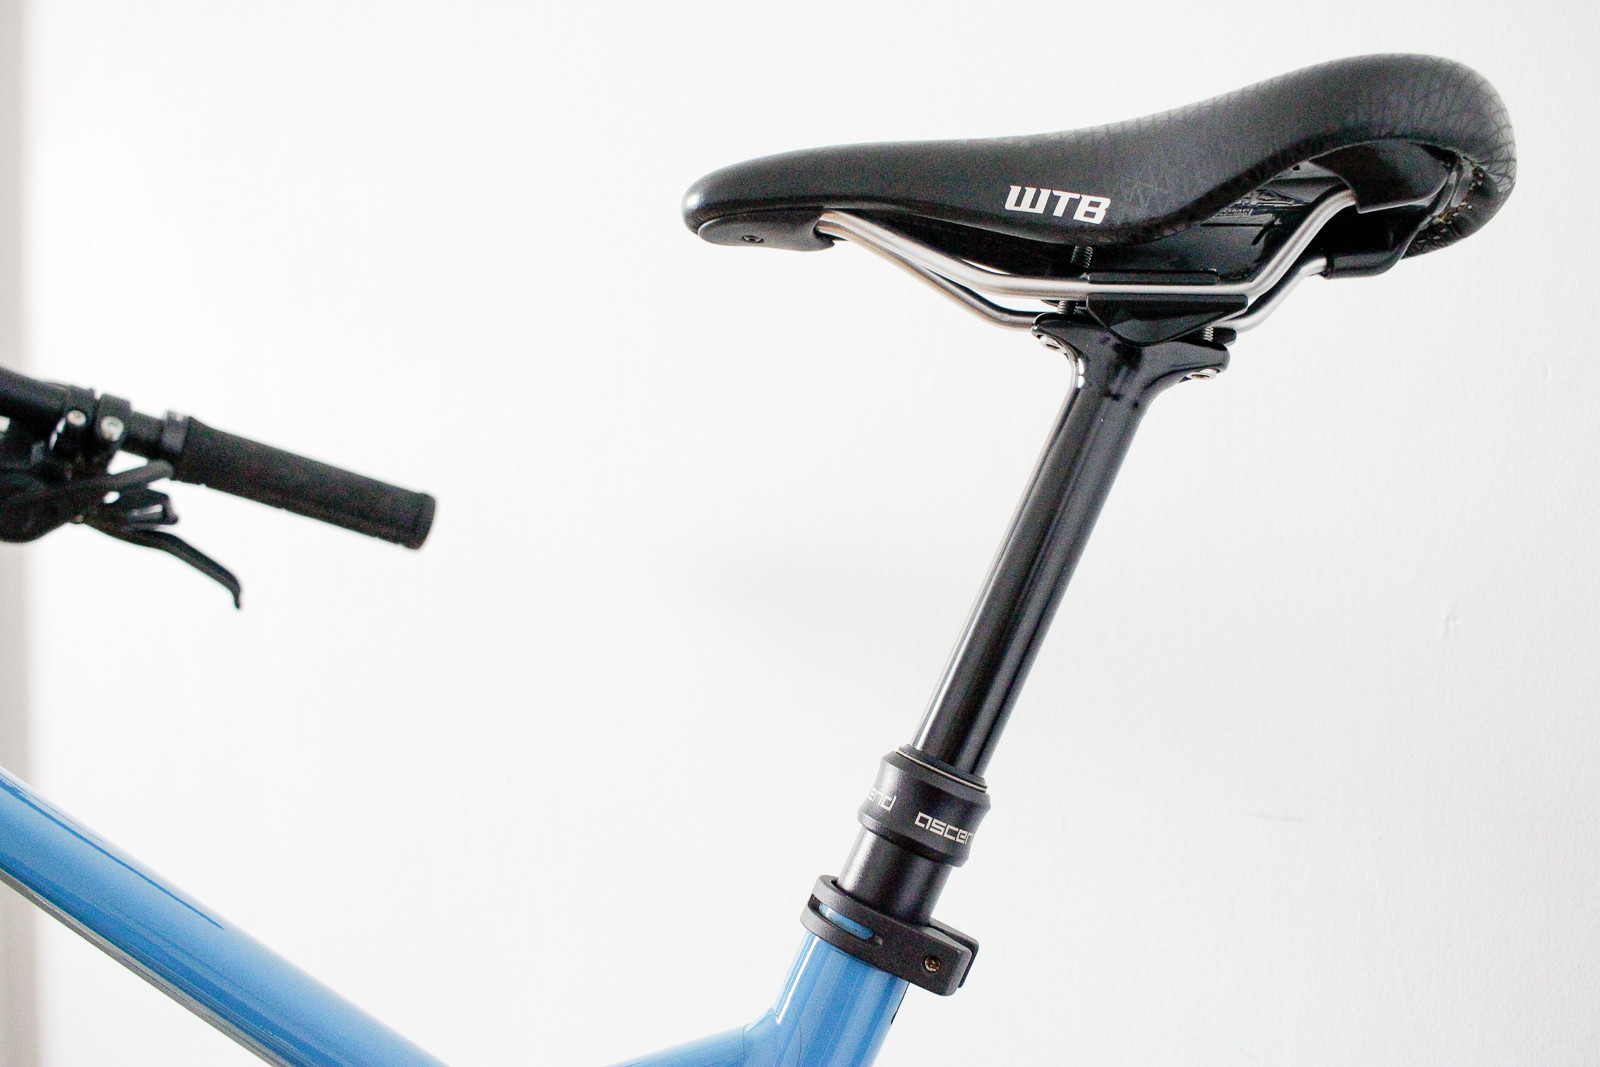 Great seat post for the price